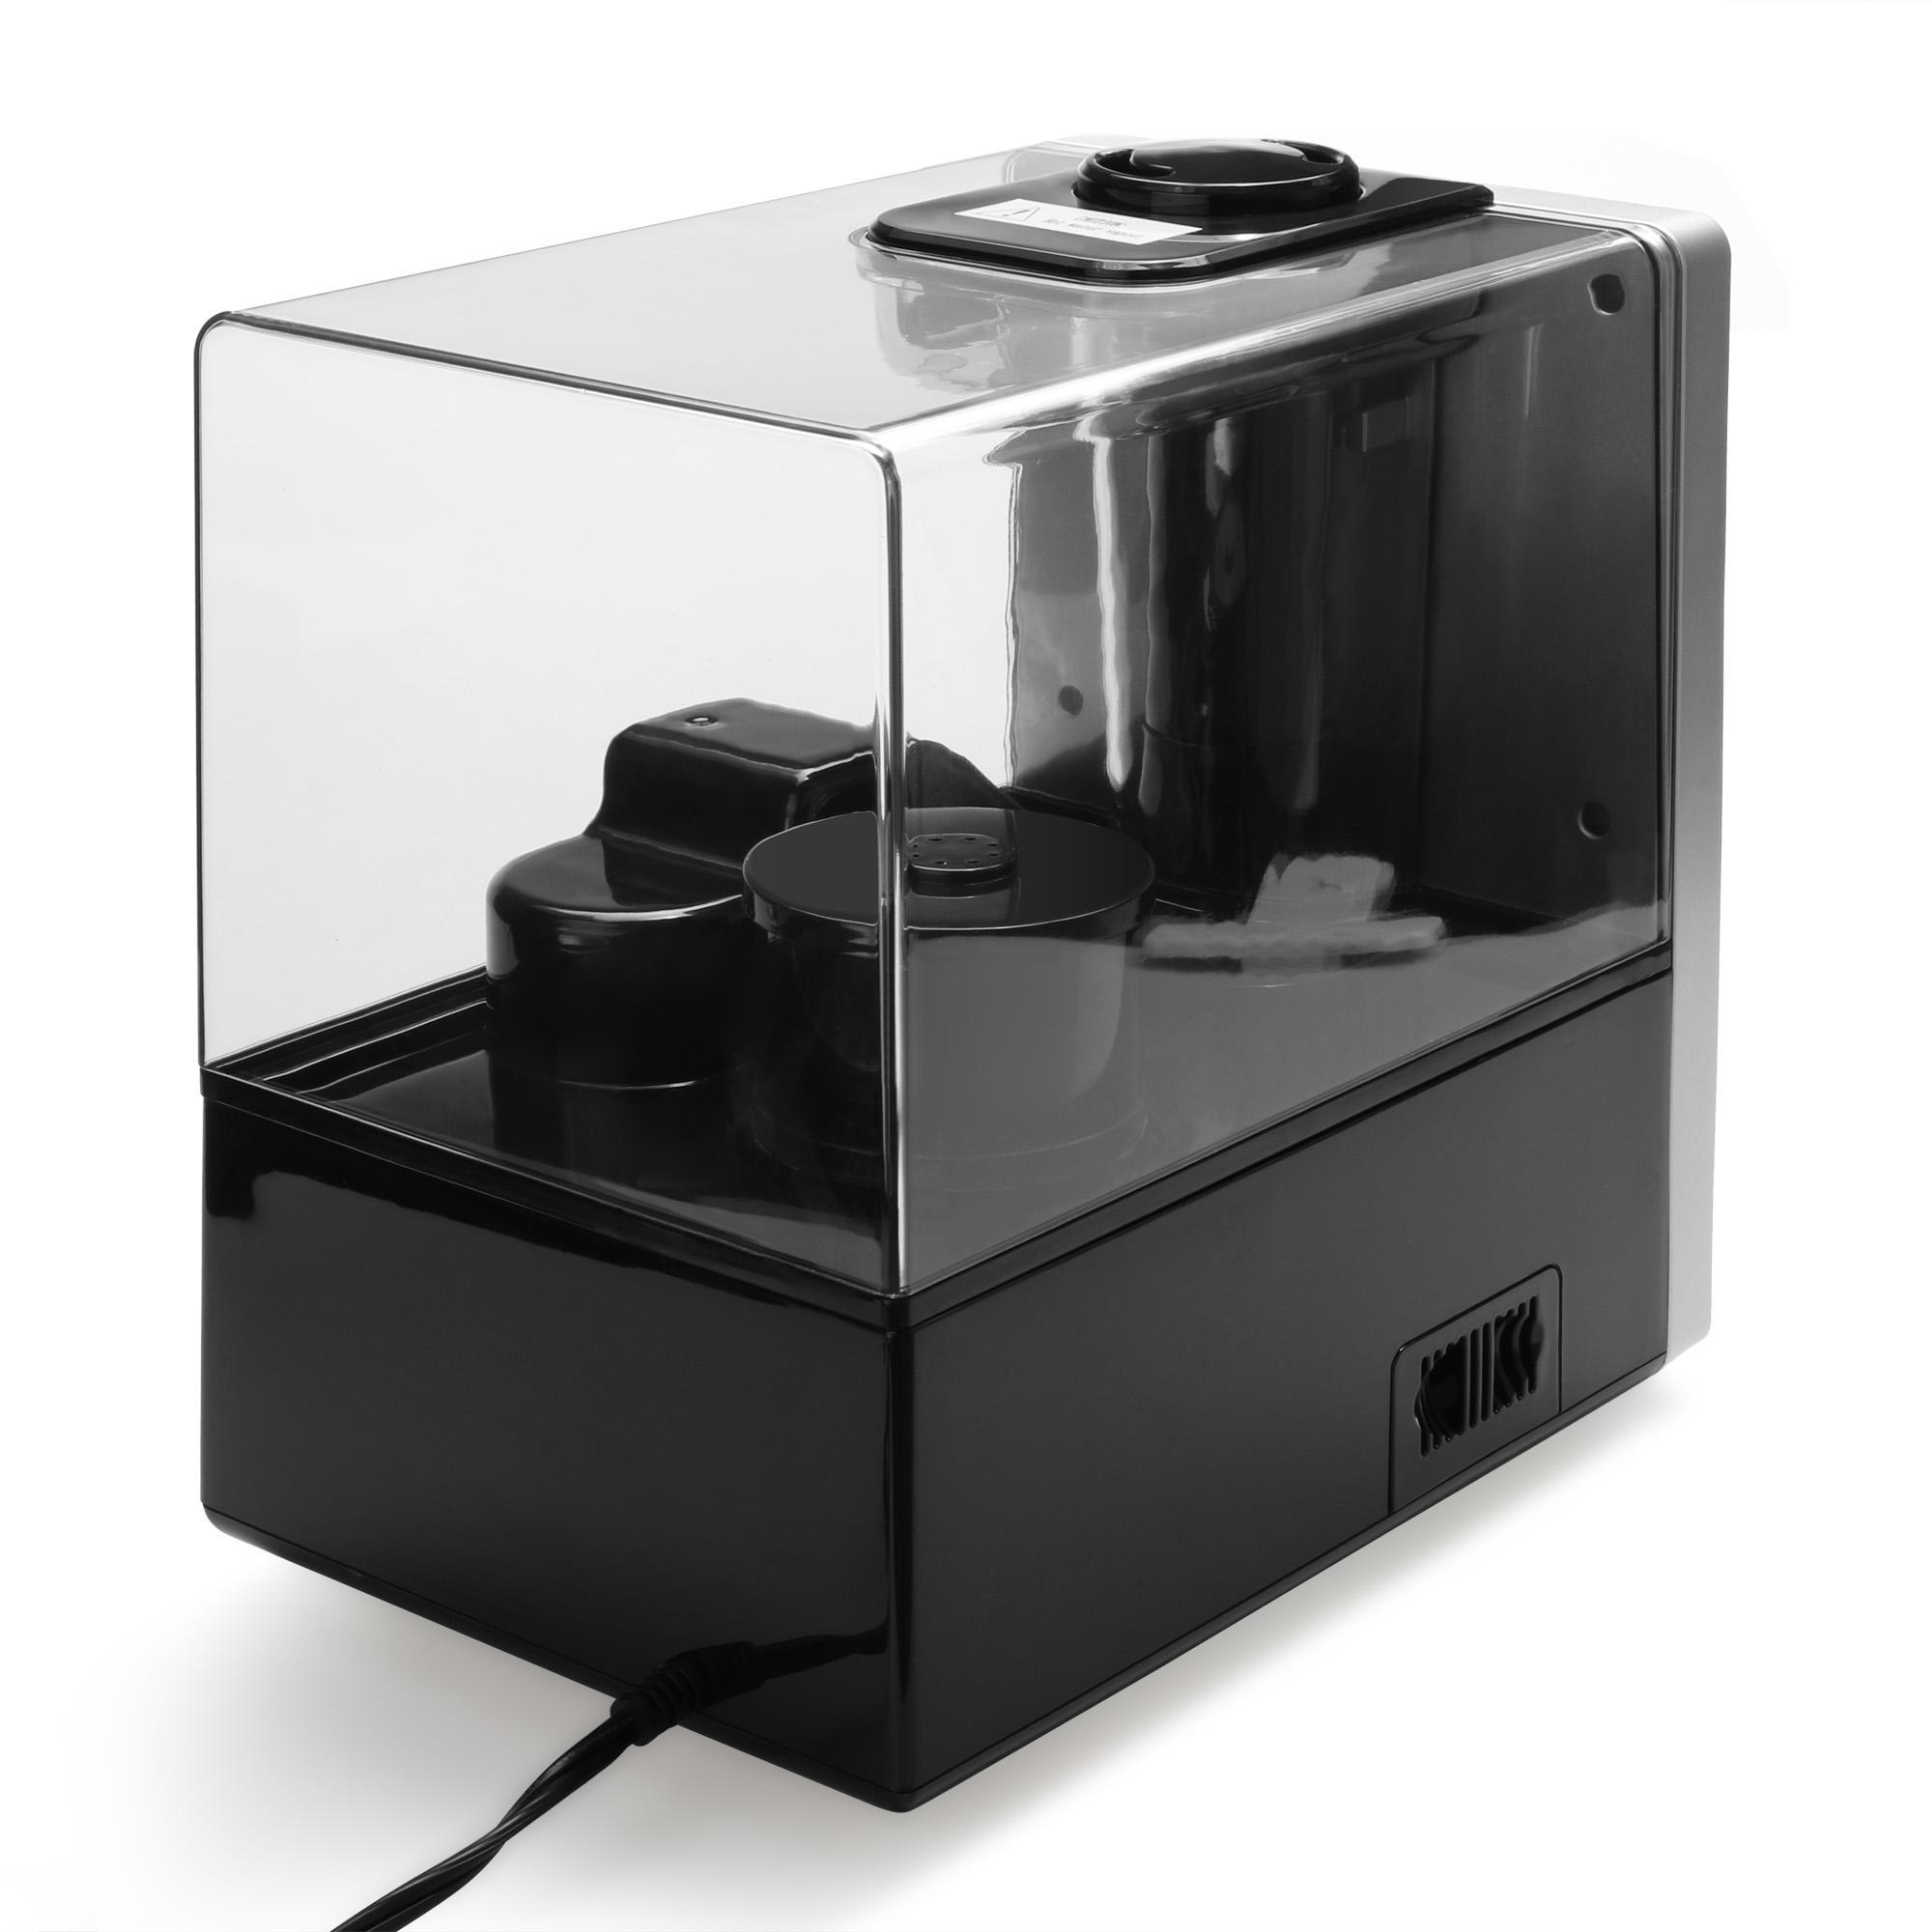 homdox humidificateur ultrasonique humidificateur norme pour chambres salons maison et bureau. Black Bedroom Furniture Sets. Home Design Ideas